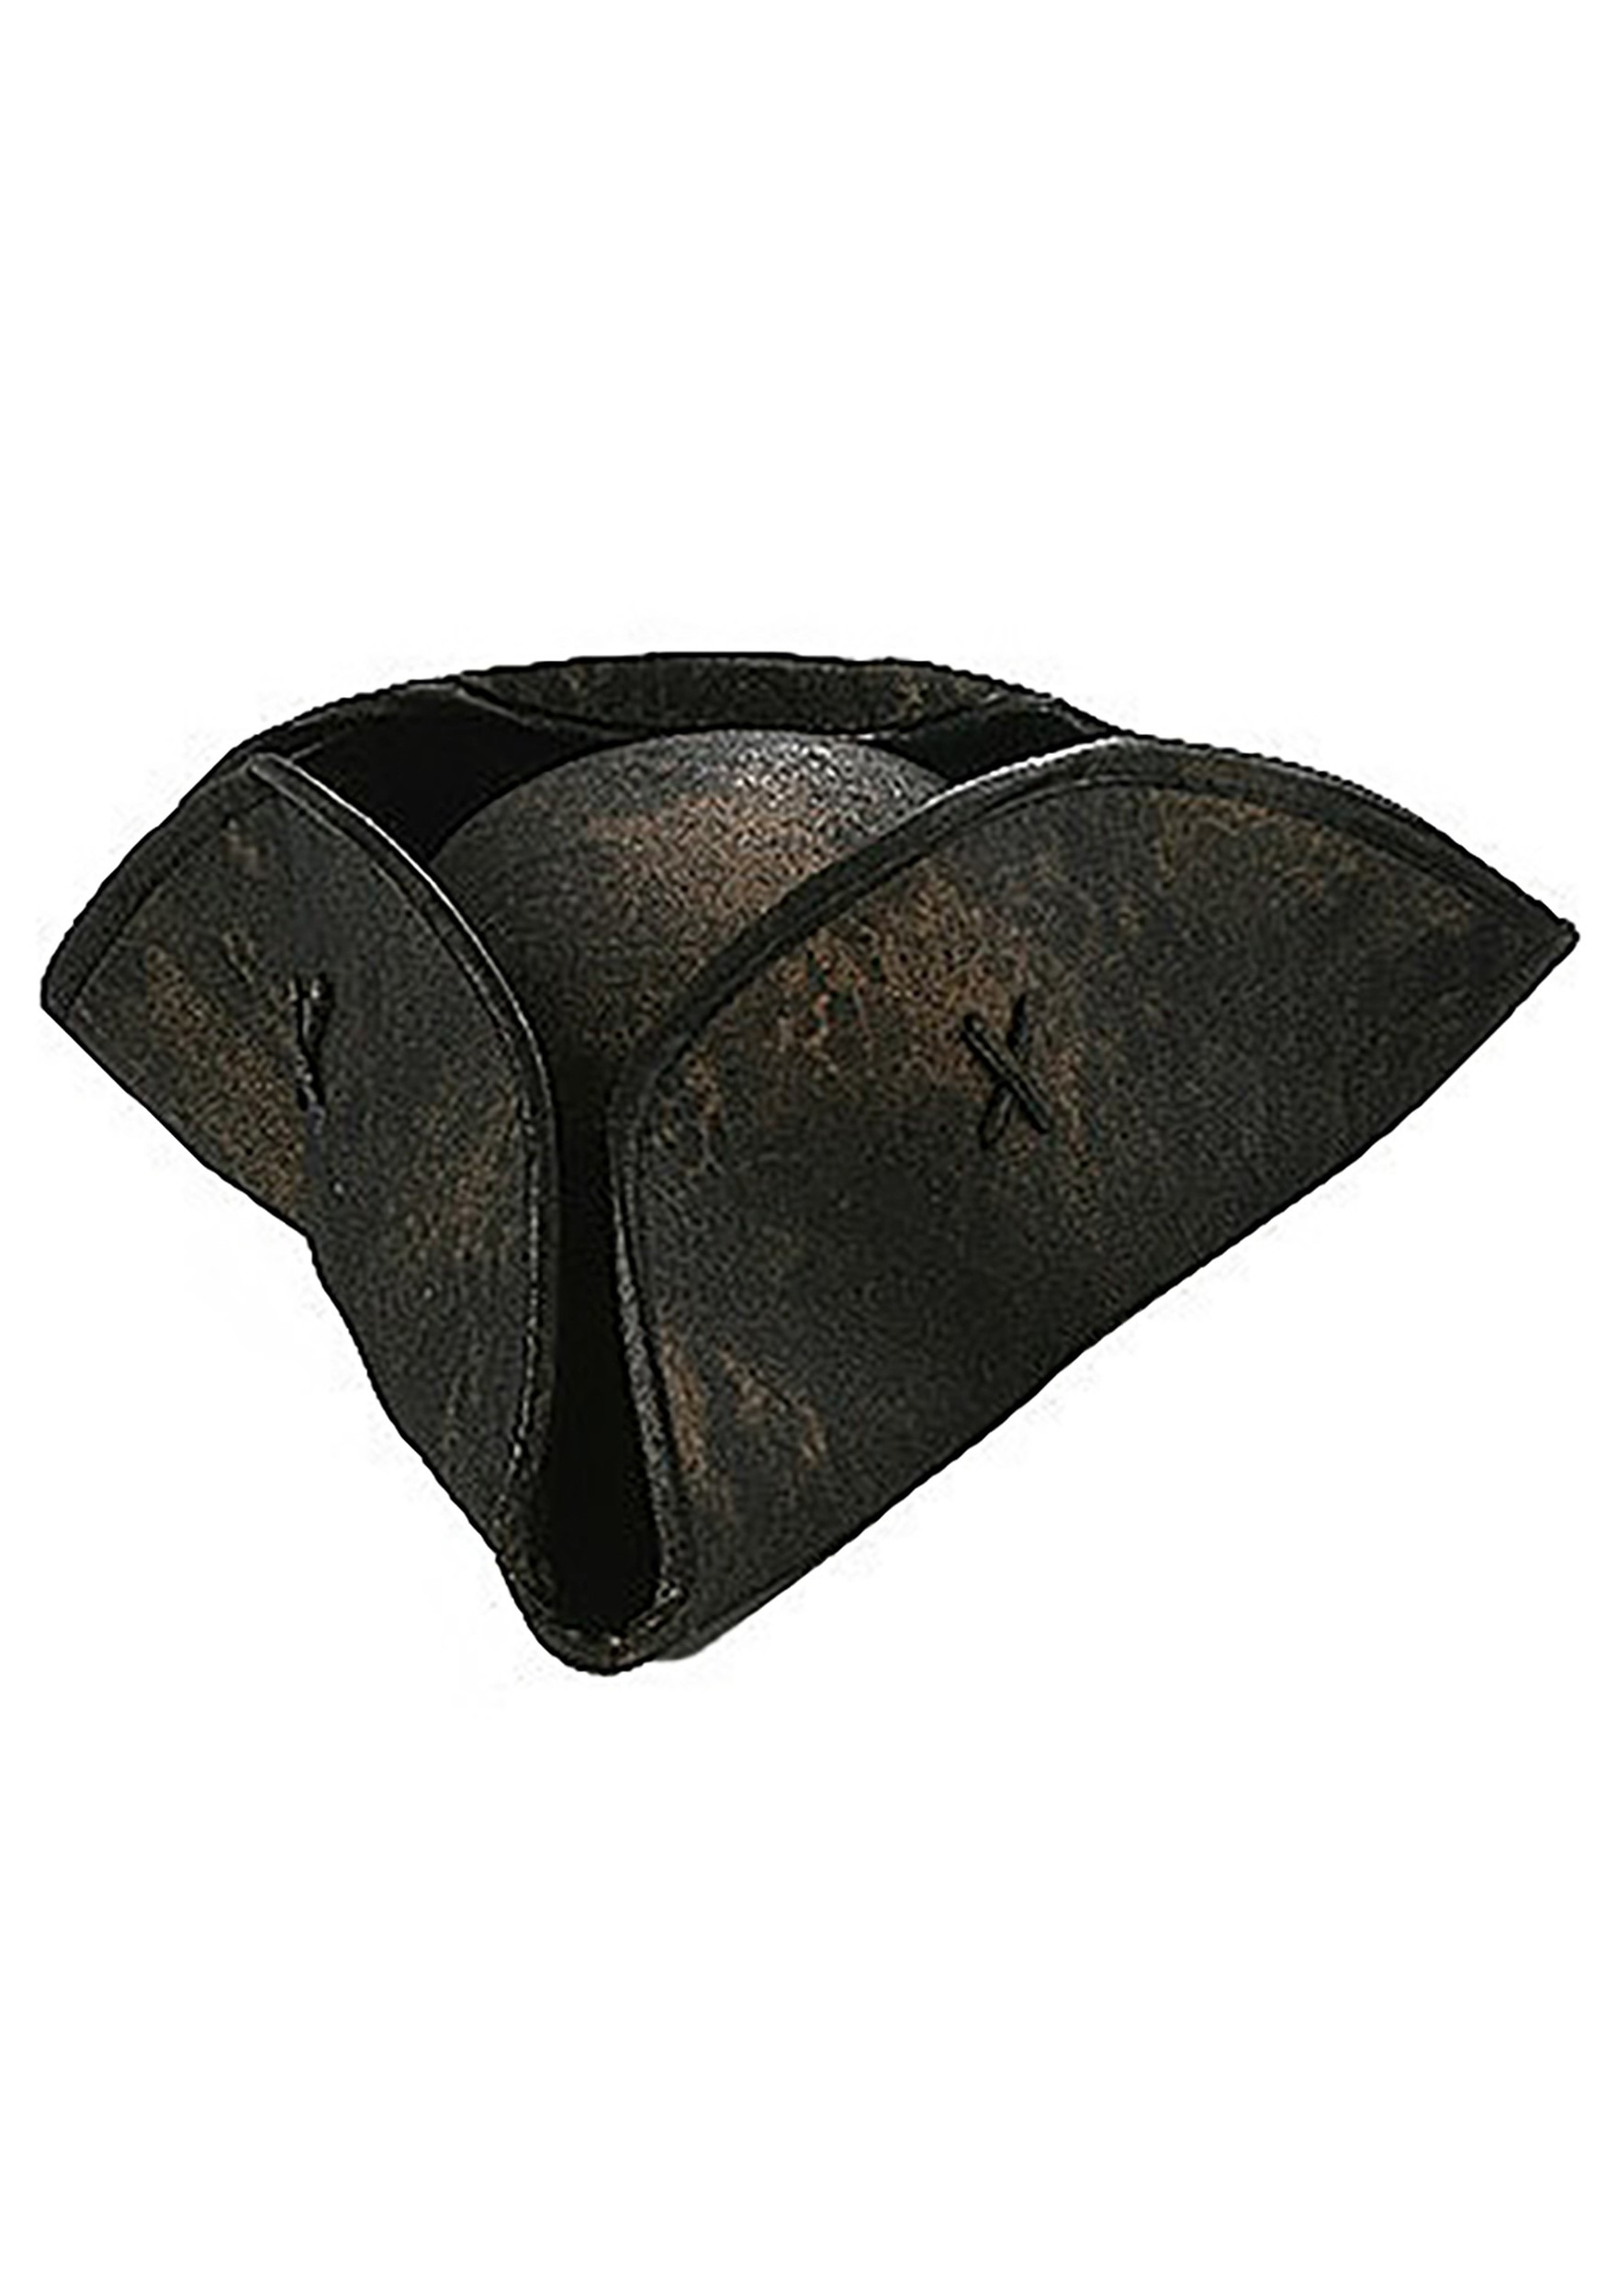 806802eb Tricorne Pirate Hat - Tricorn Three Corner Colonial Hats